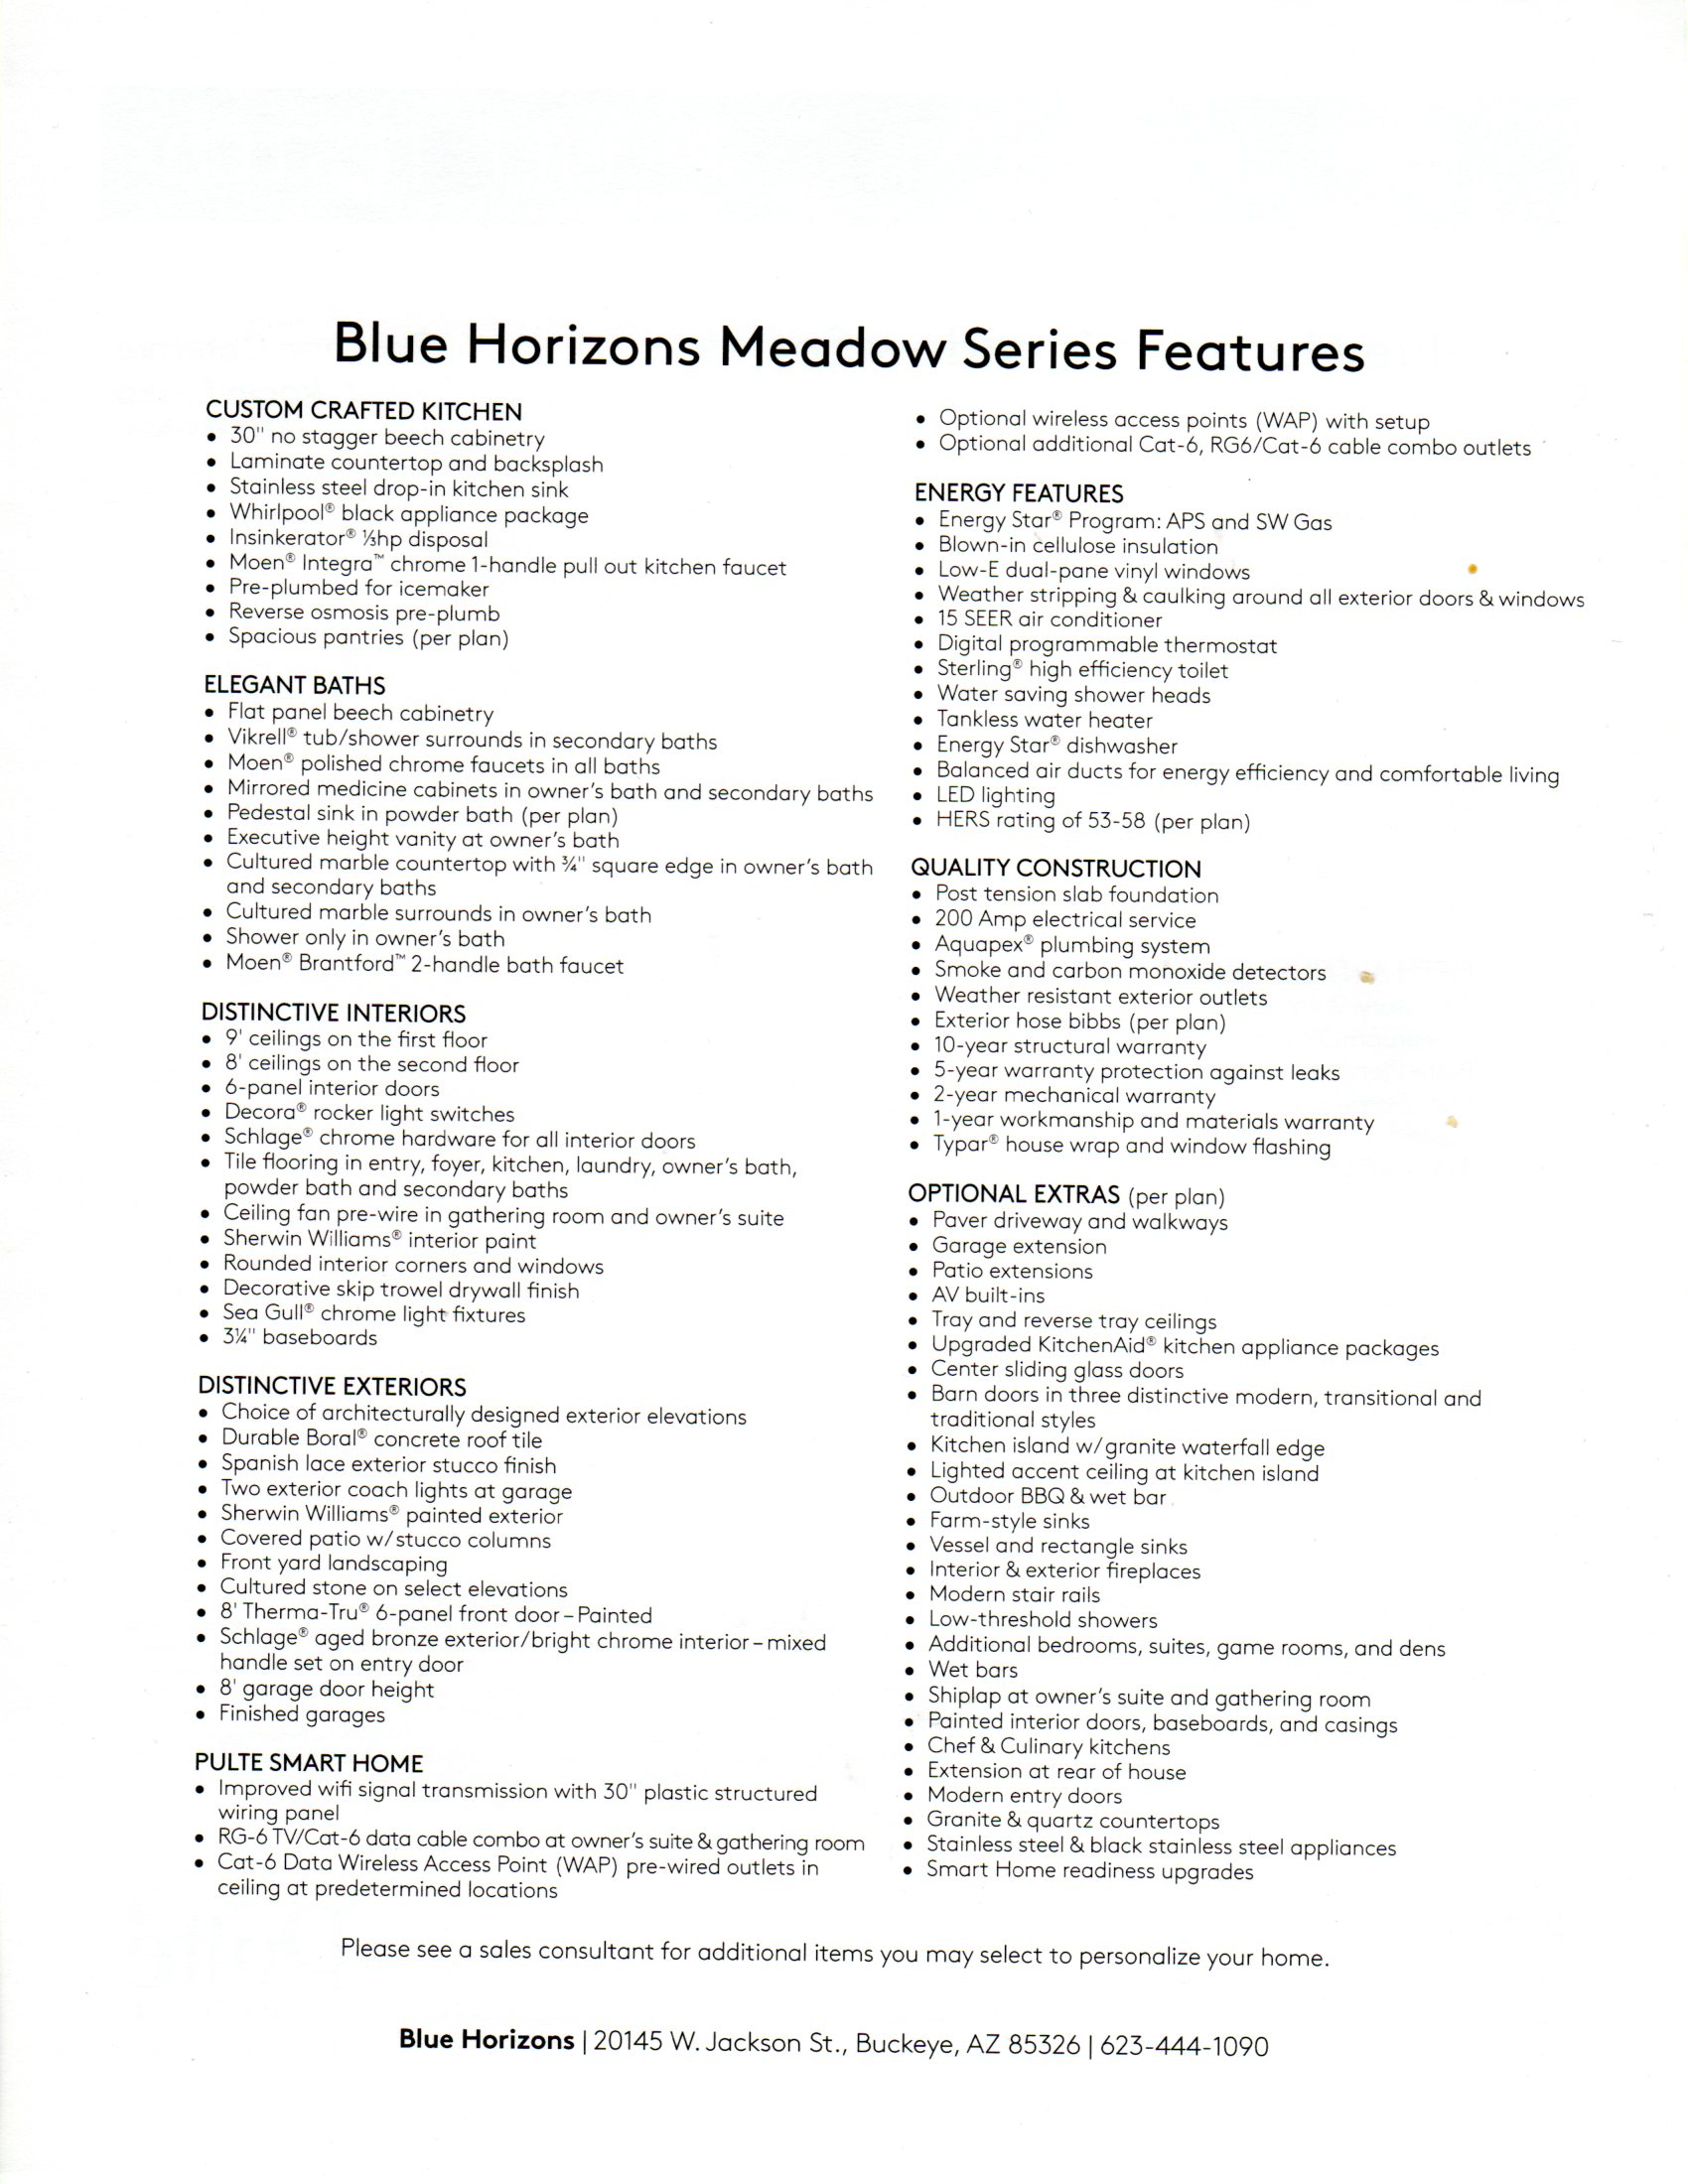 STANDARD INCLUDED FEATURES- MEADOW SERIES